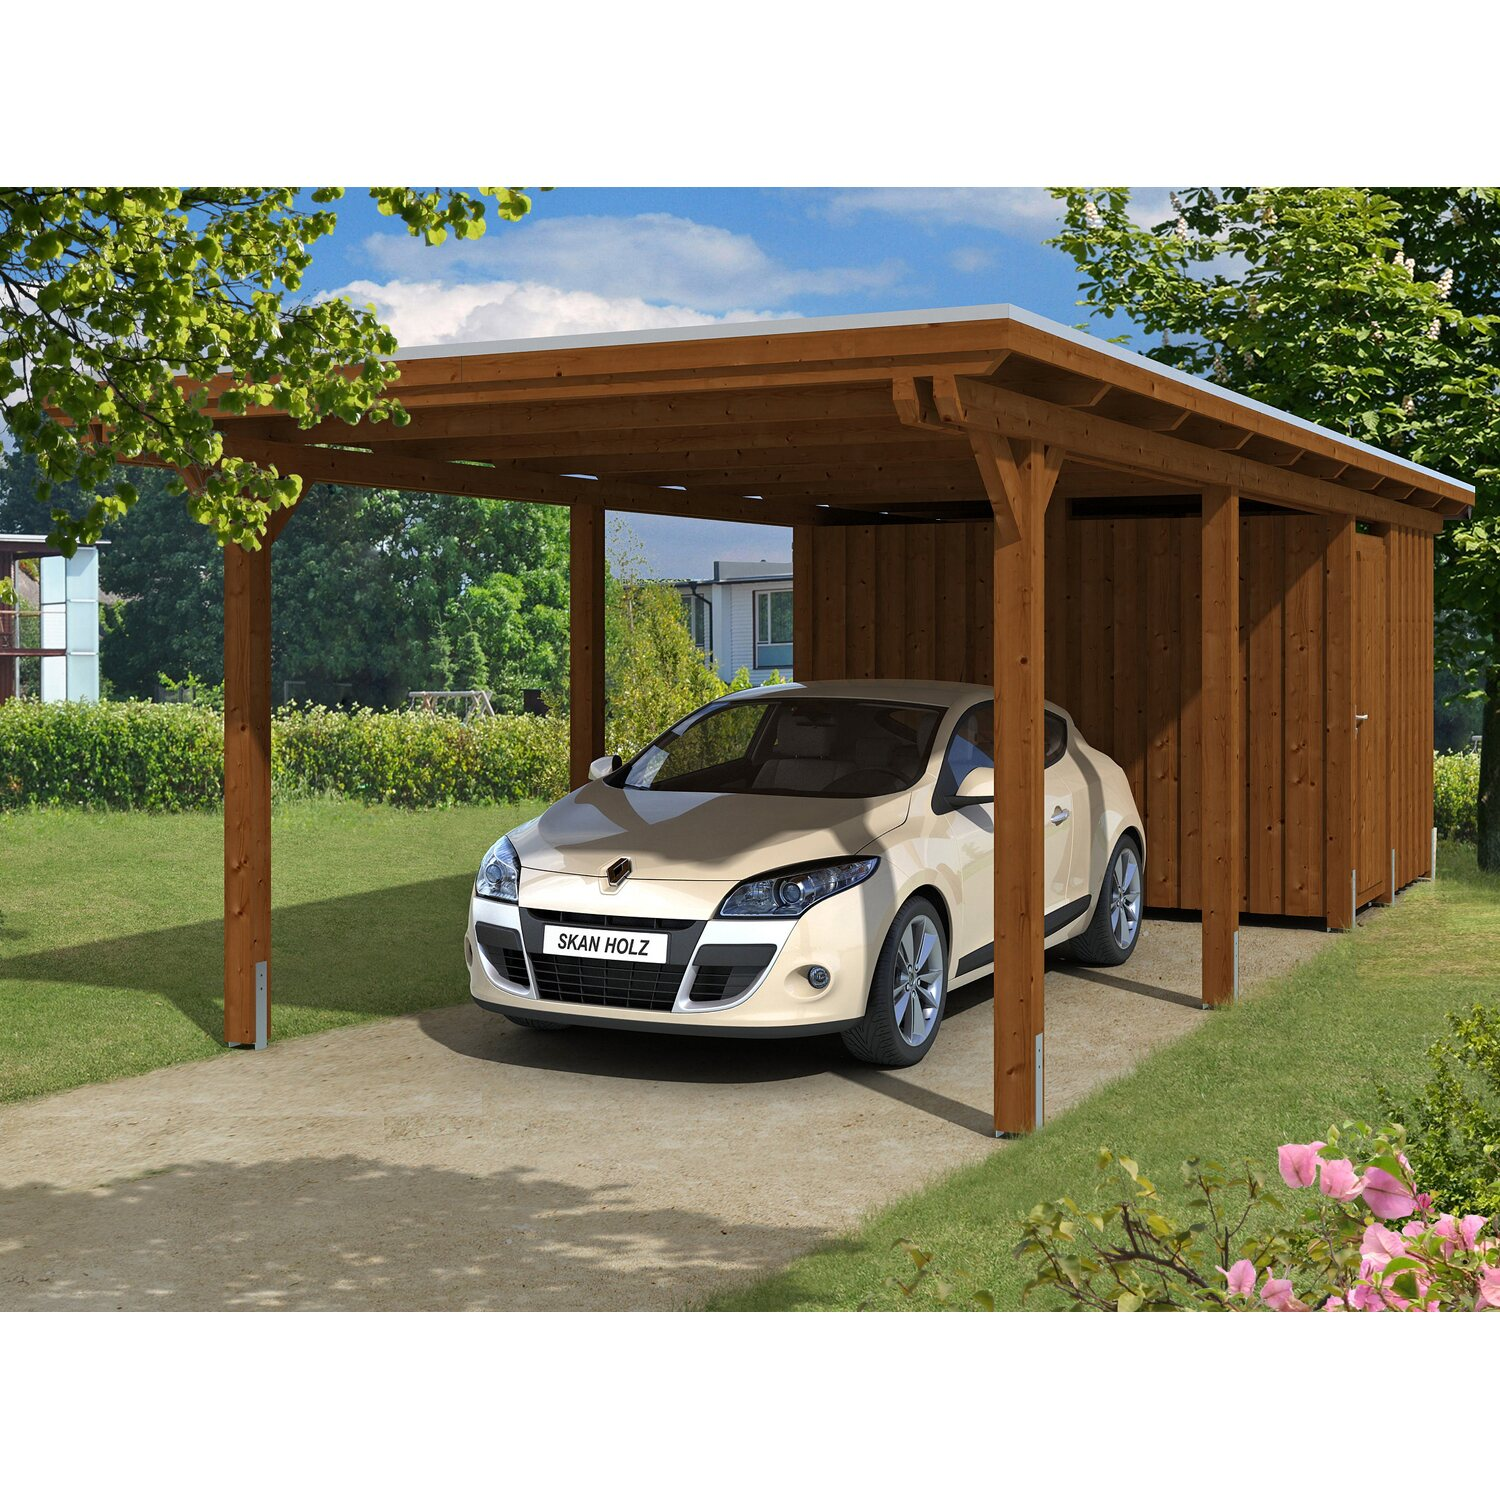 skan holz carport emsland 354 cm x 846 cm mit abstellraum nussbaum kaufen bei obi. Black Bedroom Furniture Sets. Home Design Ideas